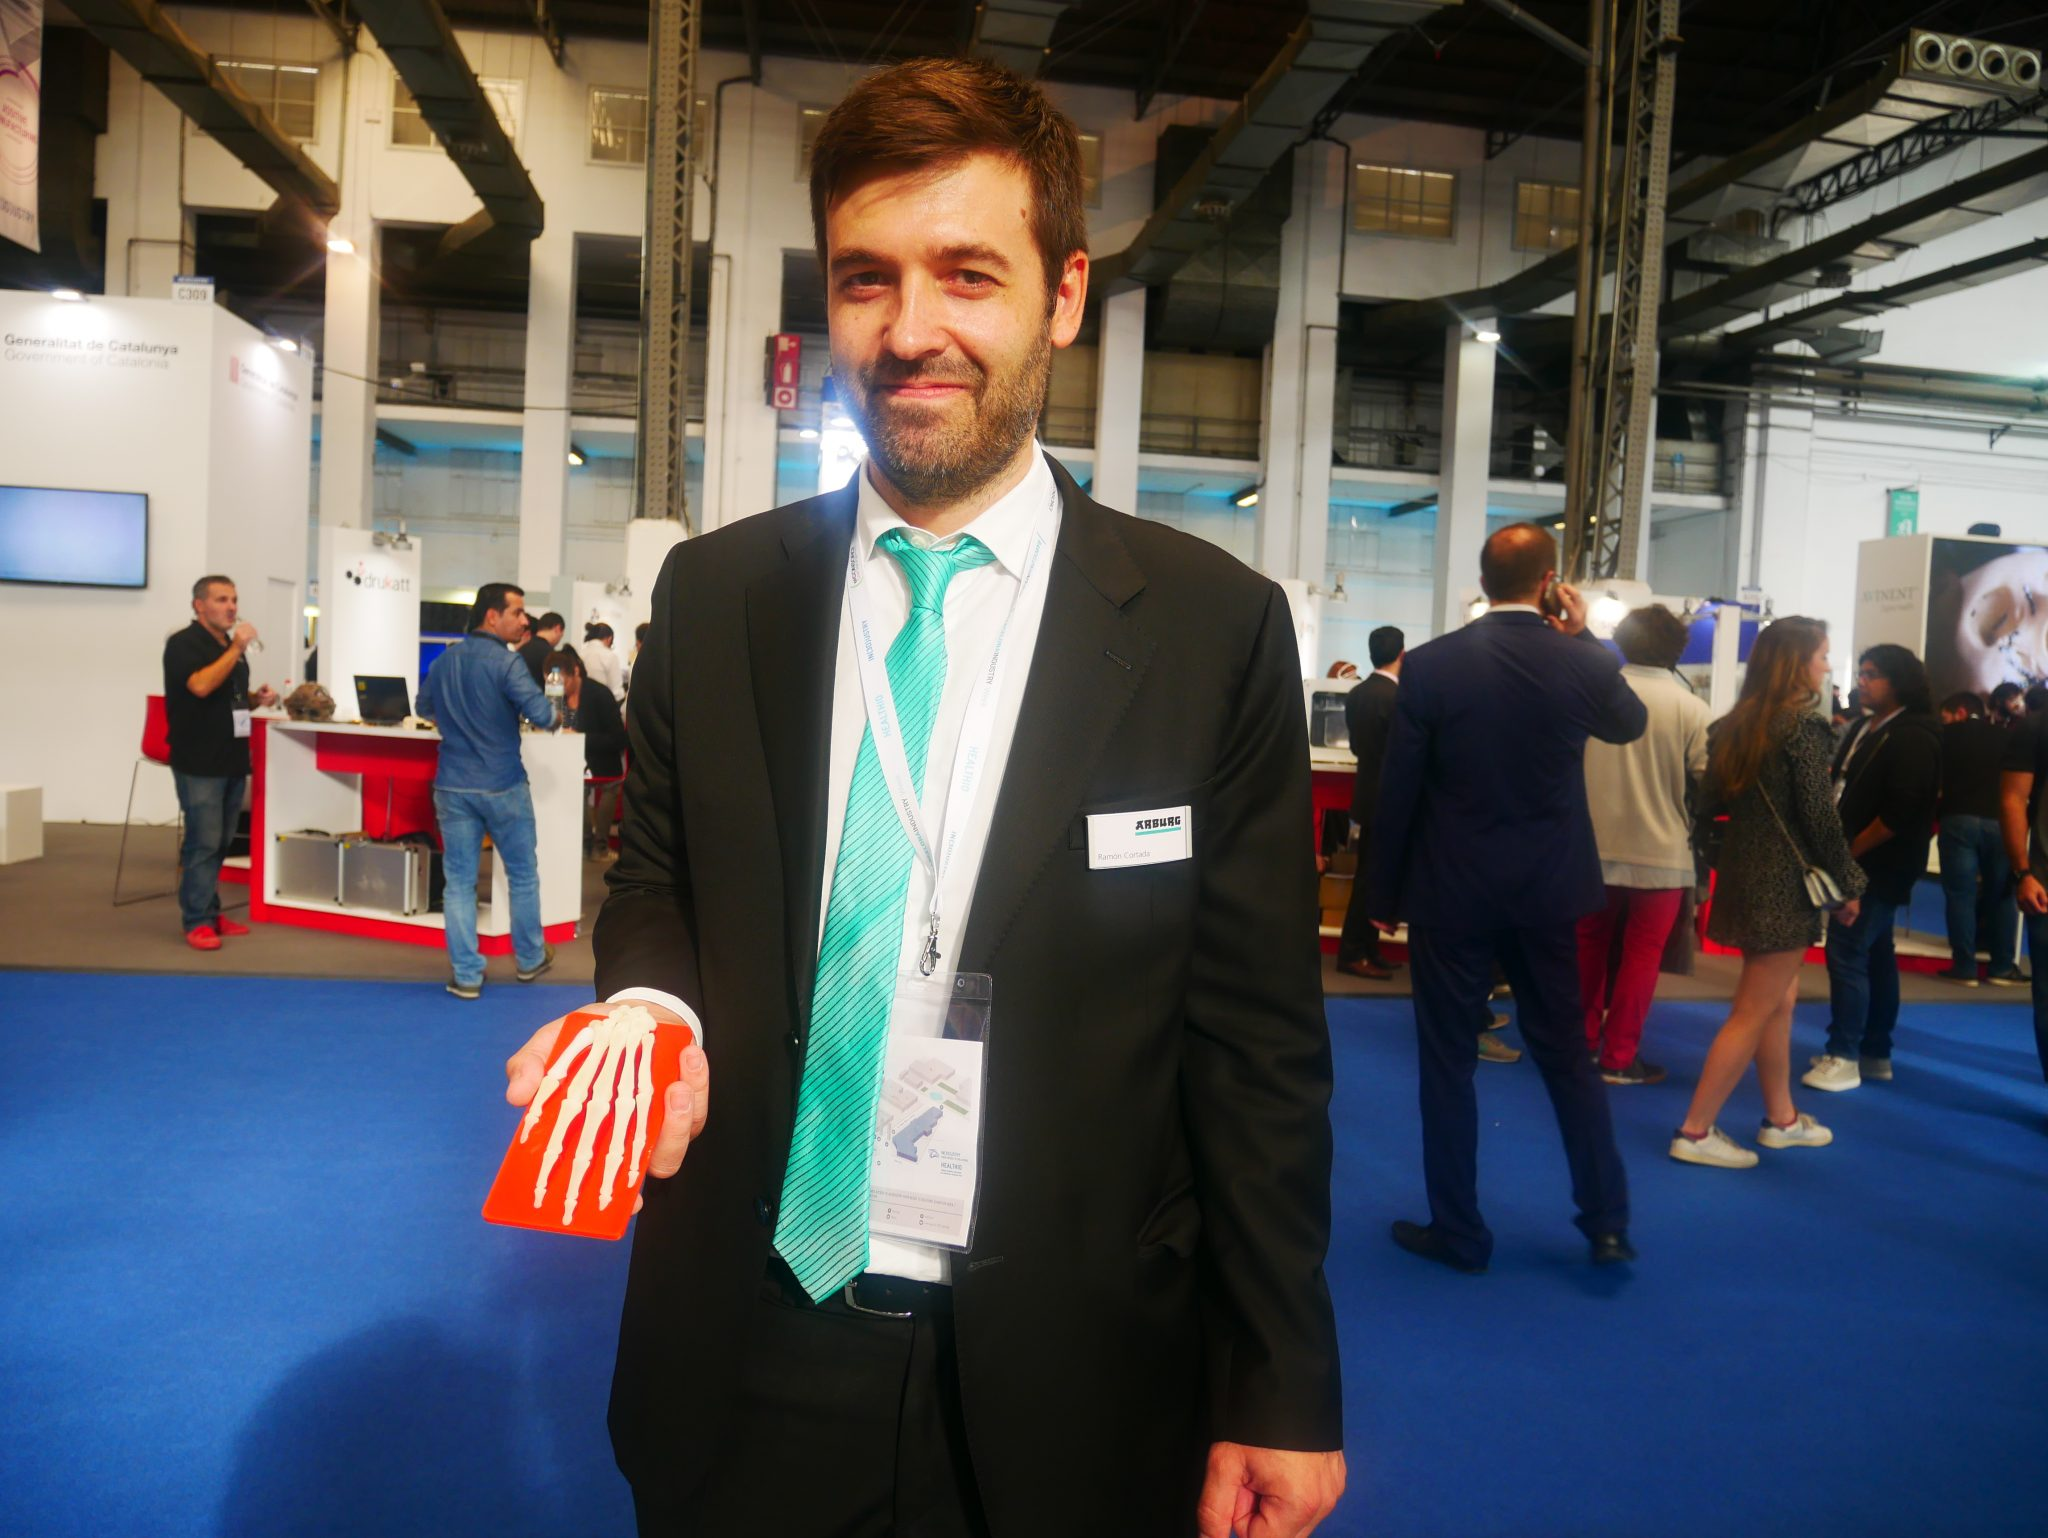 Ramon Cortada, Project Coordinator, Arburg S.A holding a 3D printed skeleton of the hand. Photo by Tia Vialva.